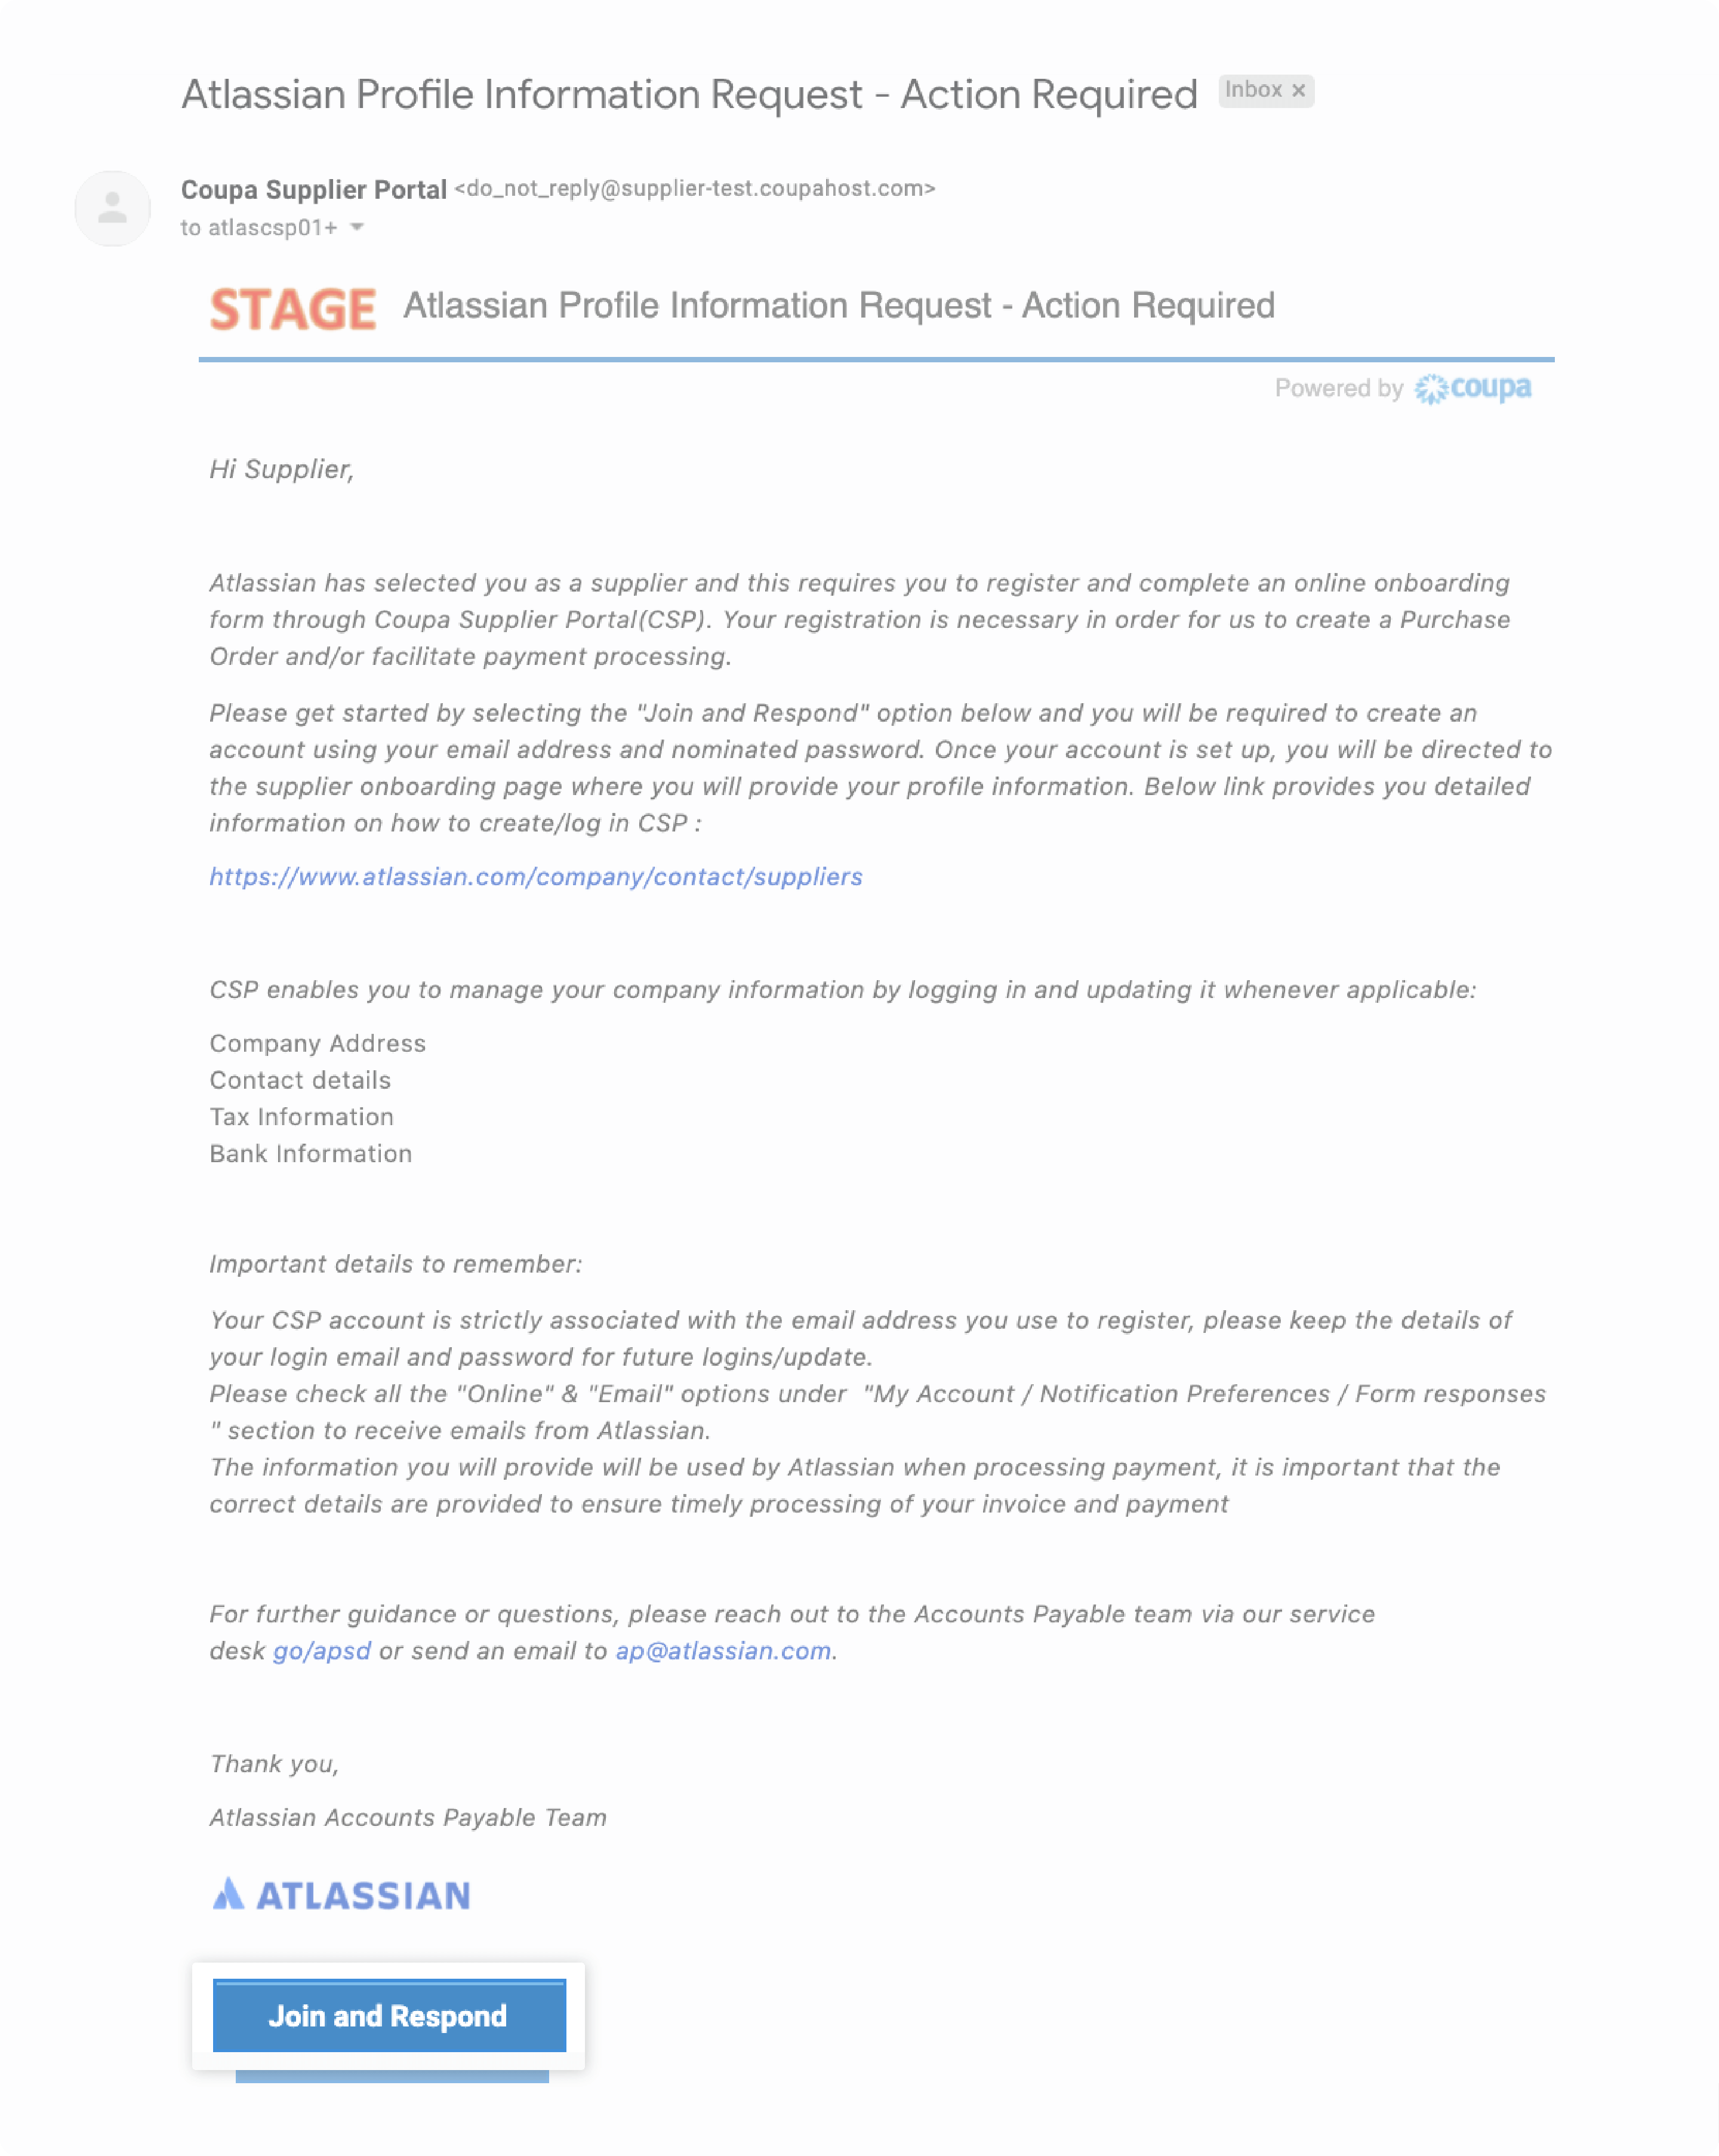 Atlassian Profile Information Request - Action Required email from Atlassian